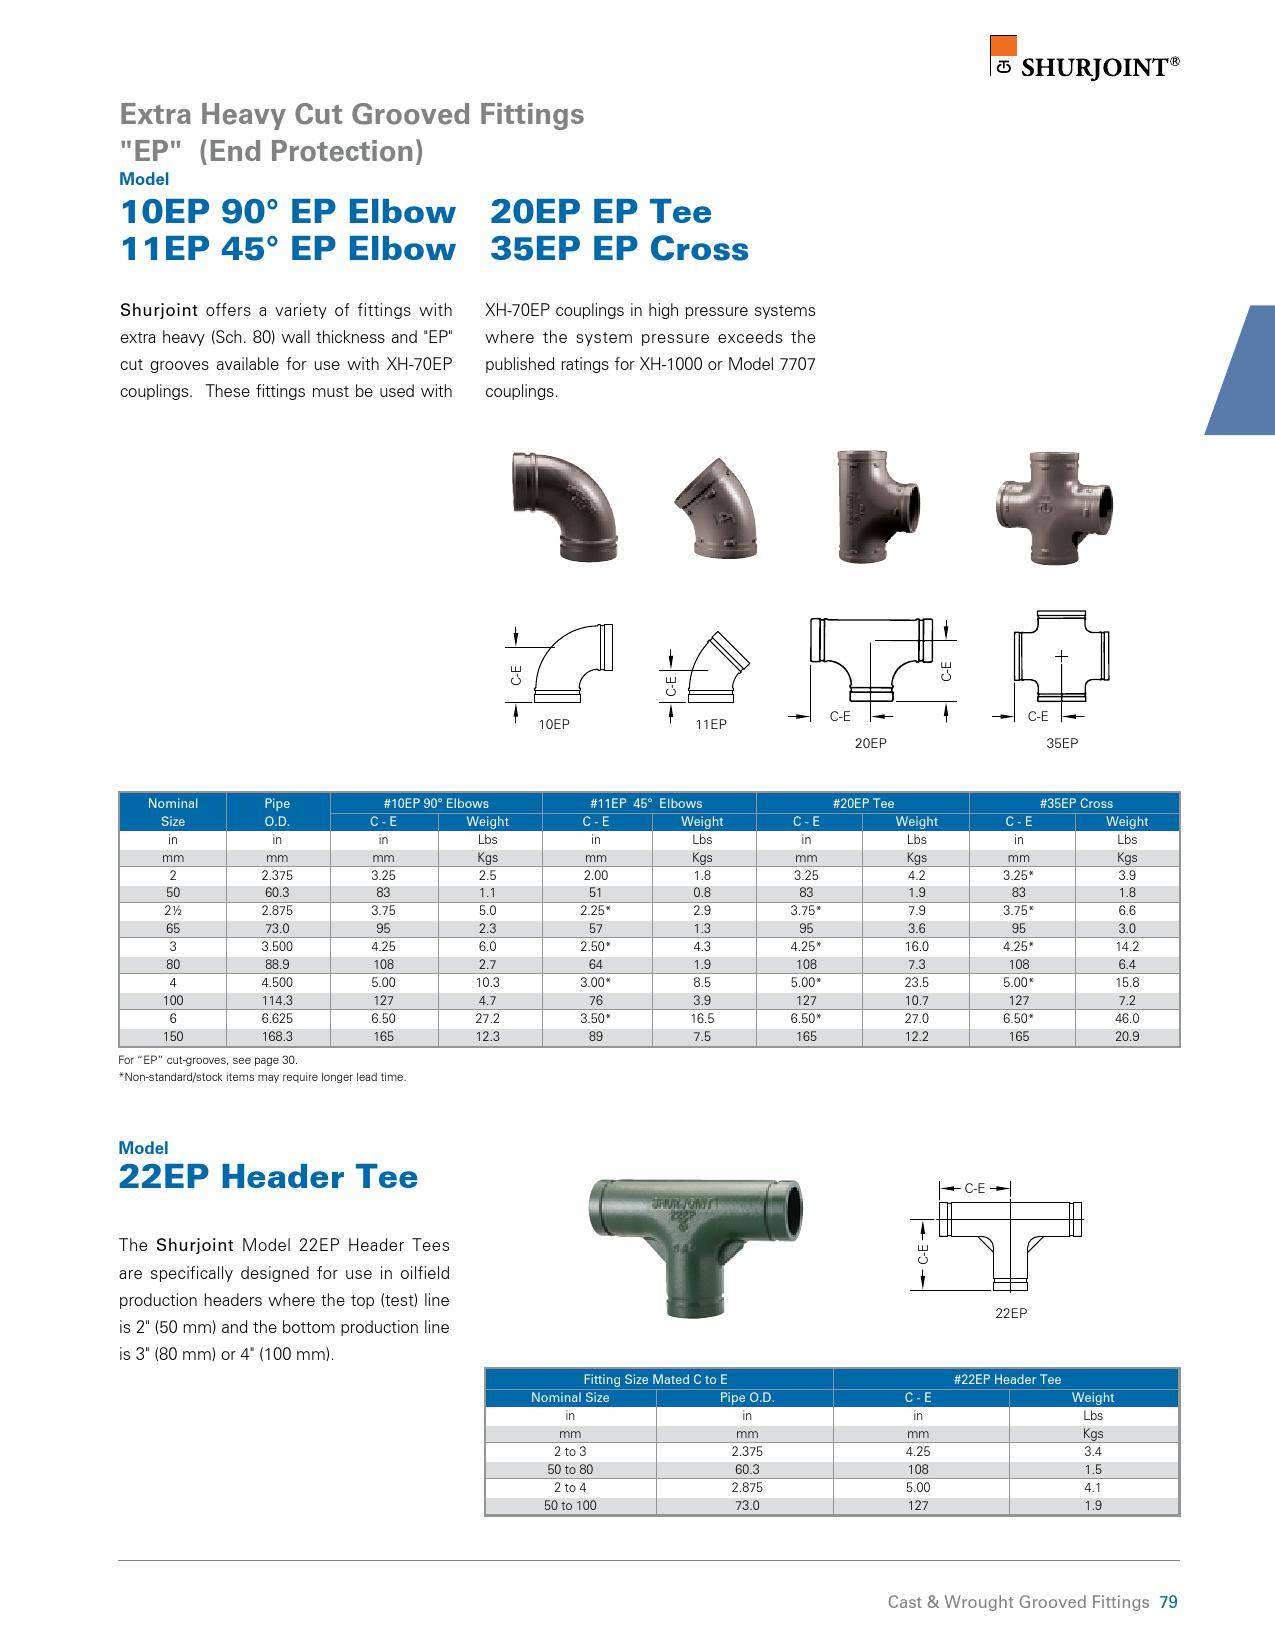 Cast & Wrought Grooved Fittings,Extra Heavy Grooved Fittings